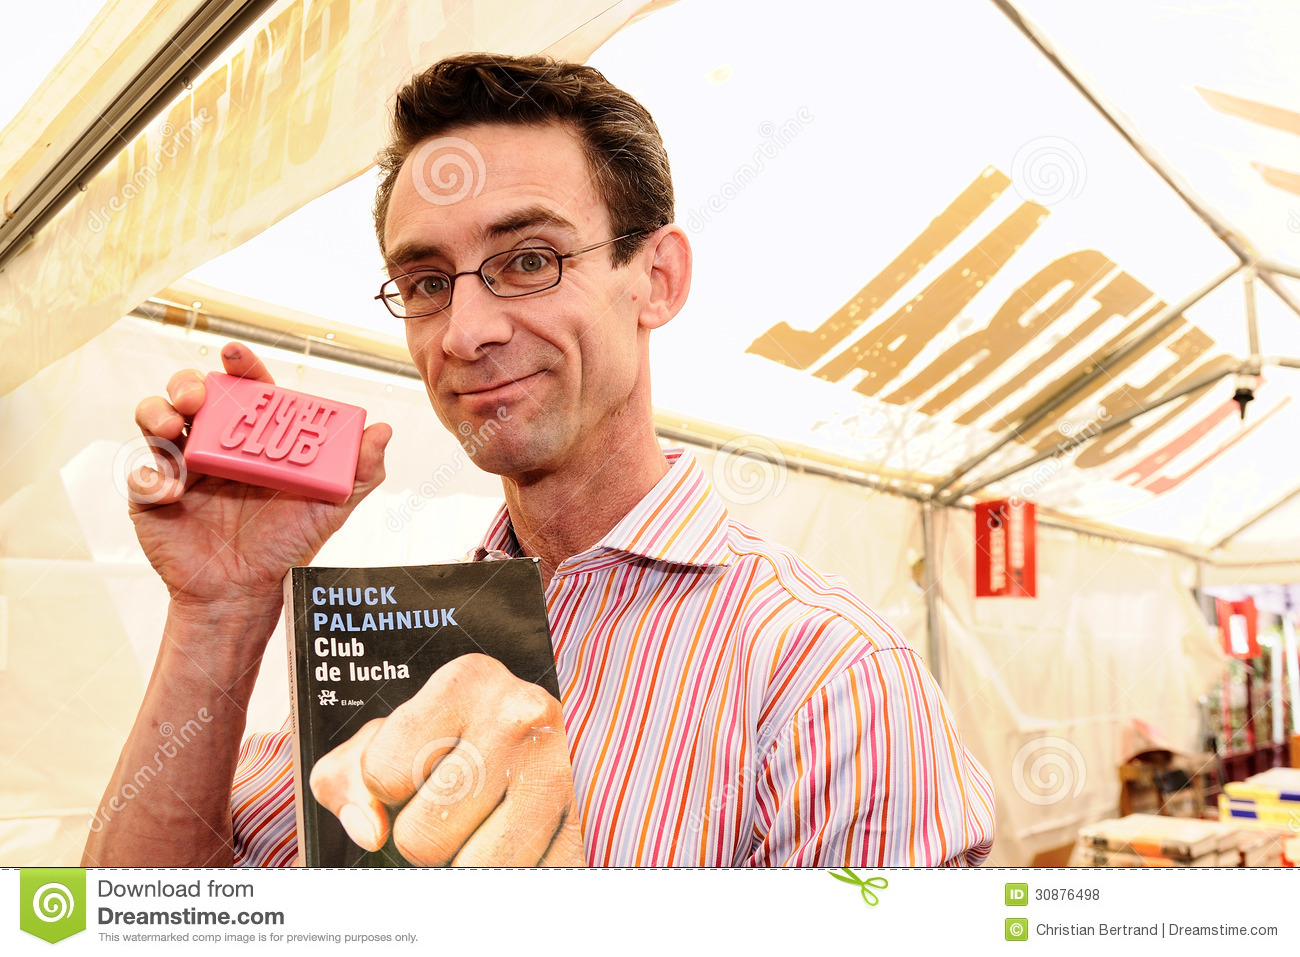 Chuck Palahniuk, author of the novel Fight Club, which also was made into a feature film, signs books in the streets of Barcelona